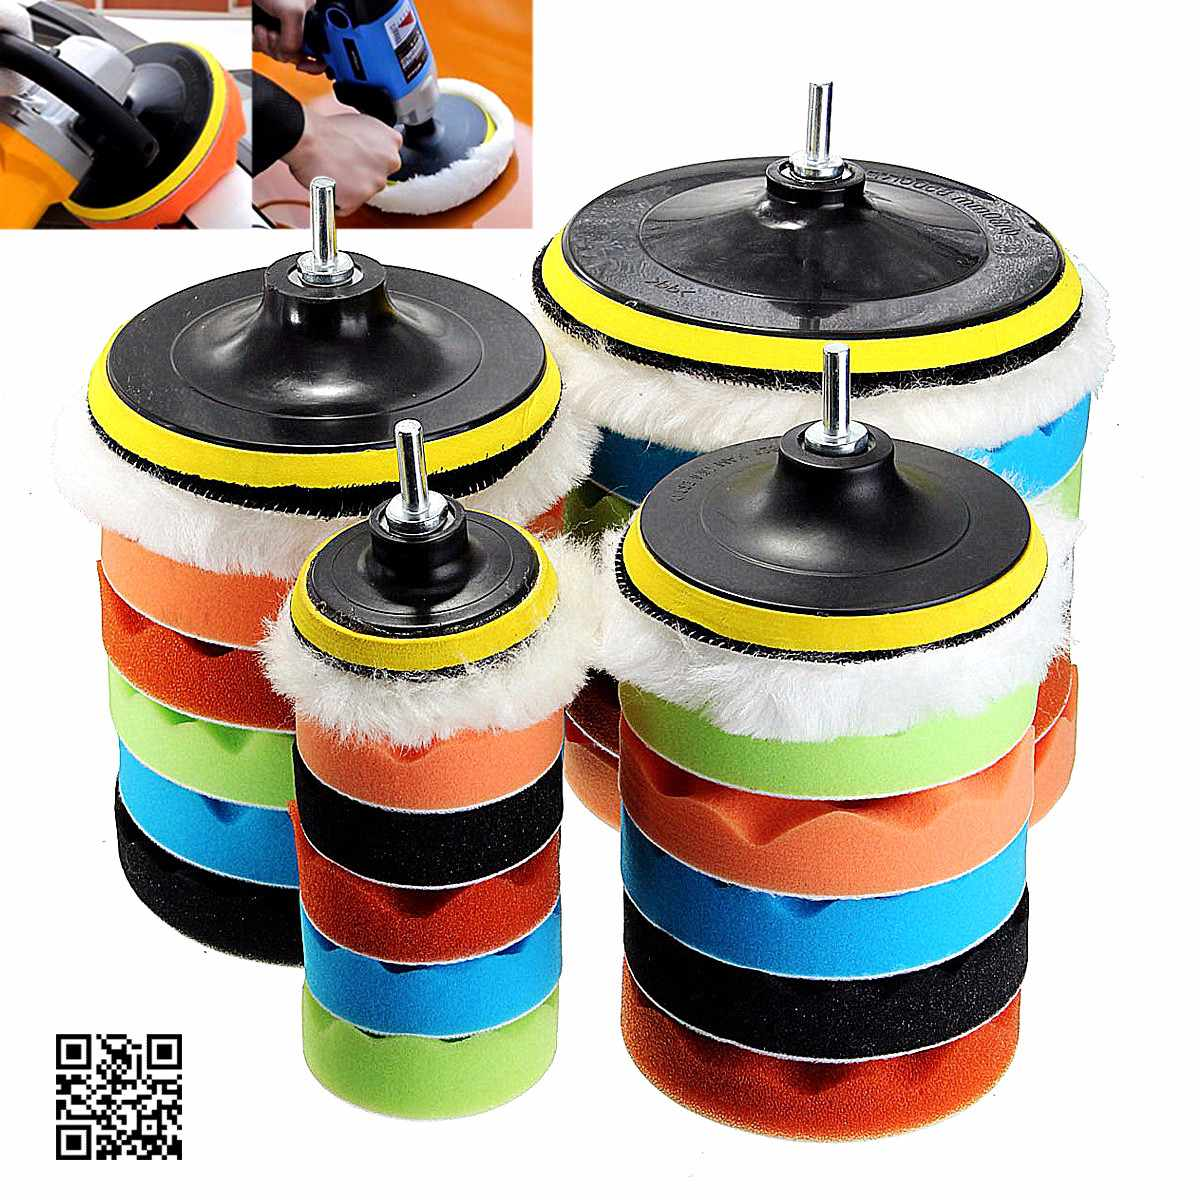 7x 3''5''6''7''Buffing Sponge Polishing Pad Hand Tool Kit For Car Polisher Compound Polishing